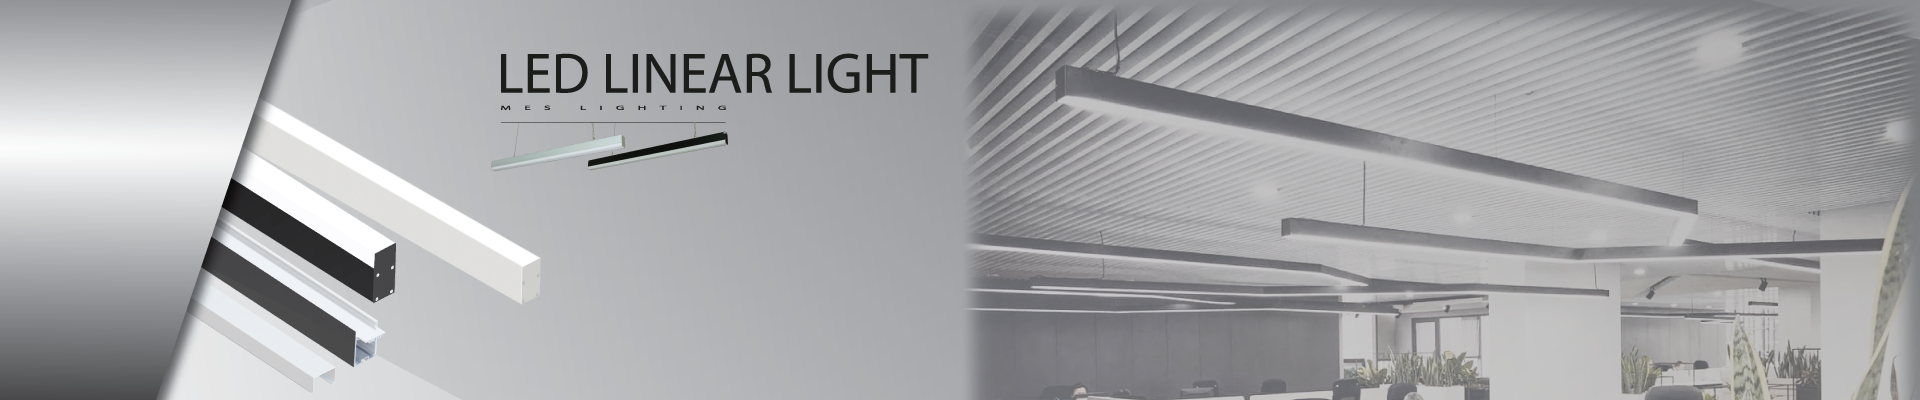 LED CLADDING WALL LINEAR MLL571 12W